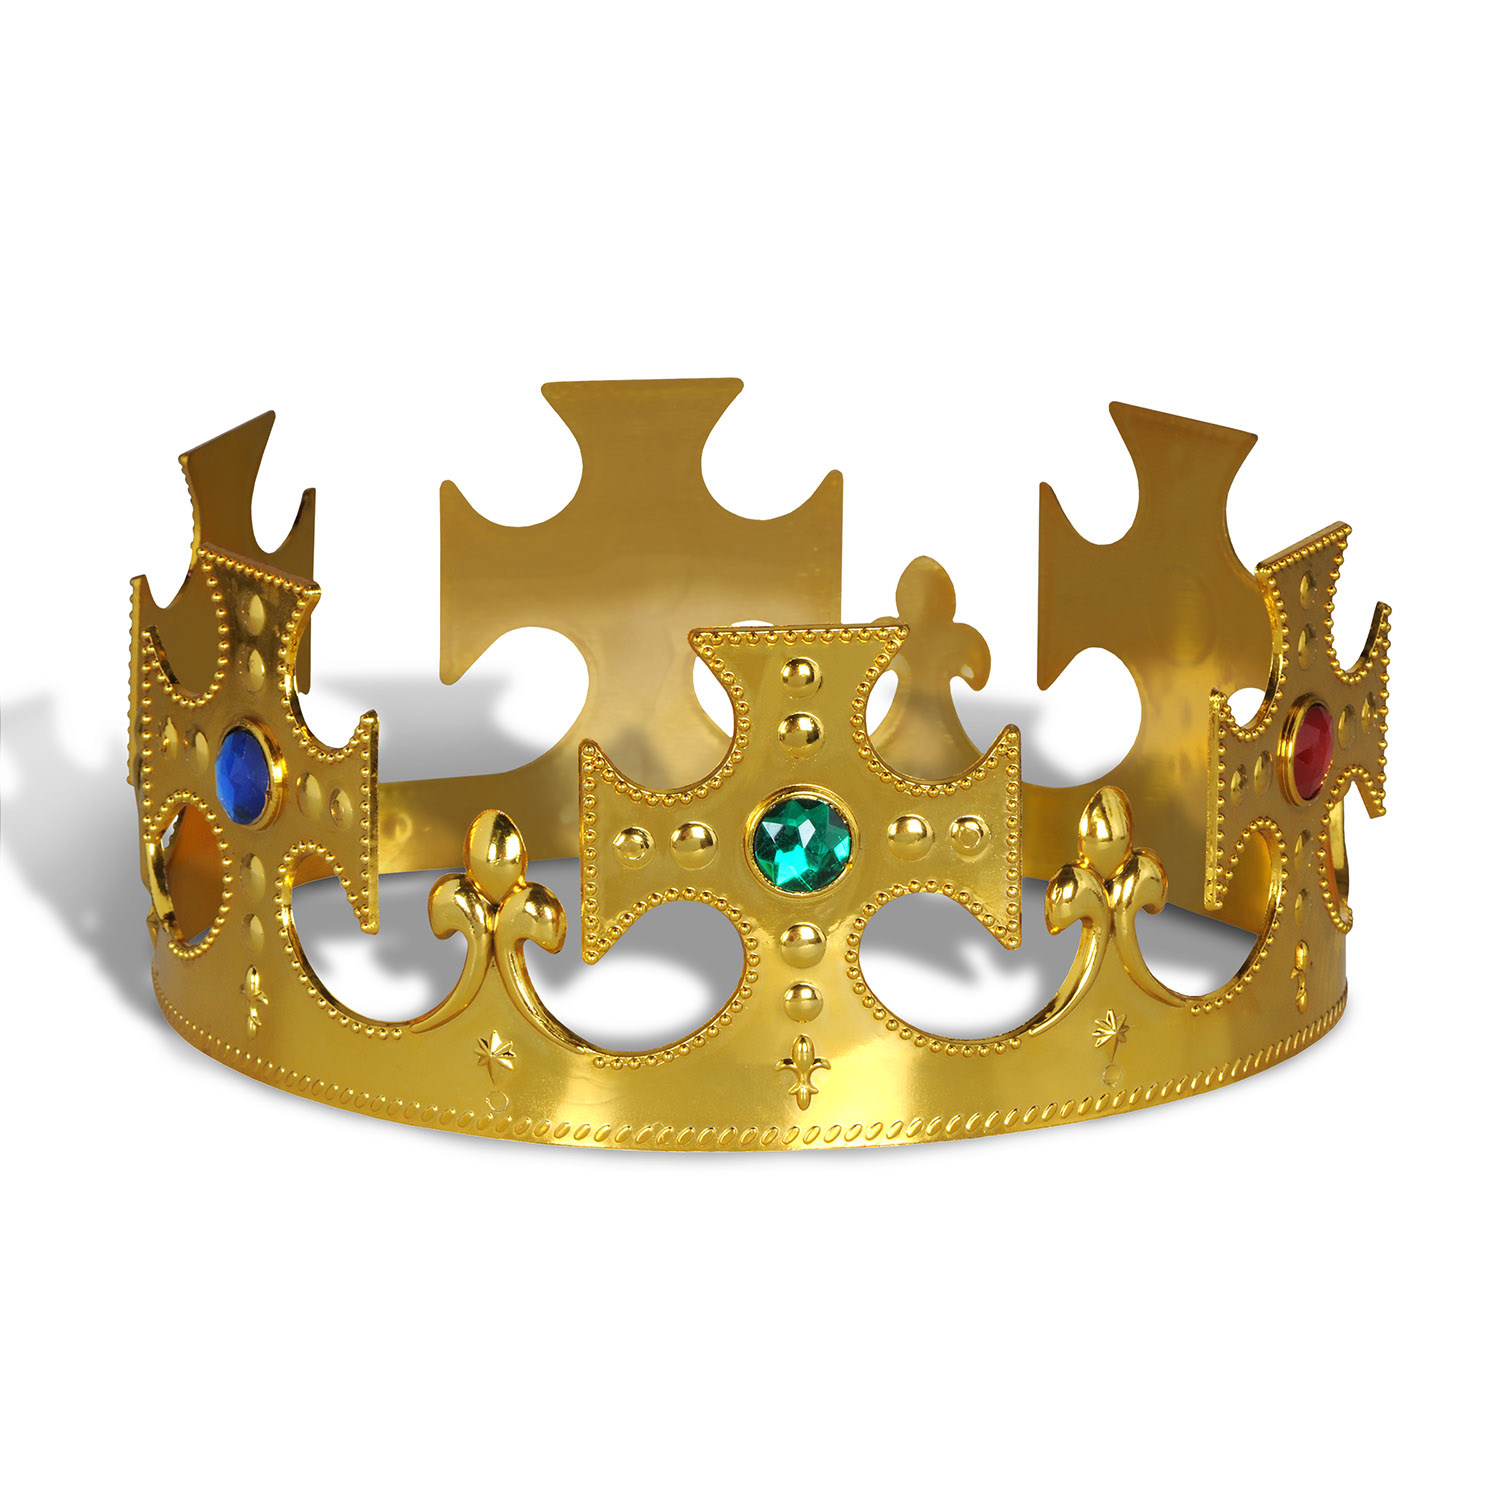 Plastic Jeweled Kings Crown (Pack of 12) .